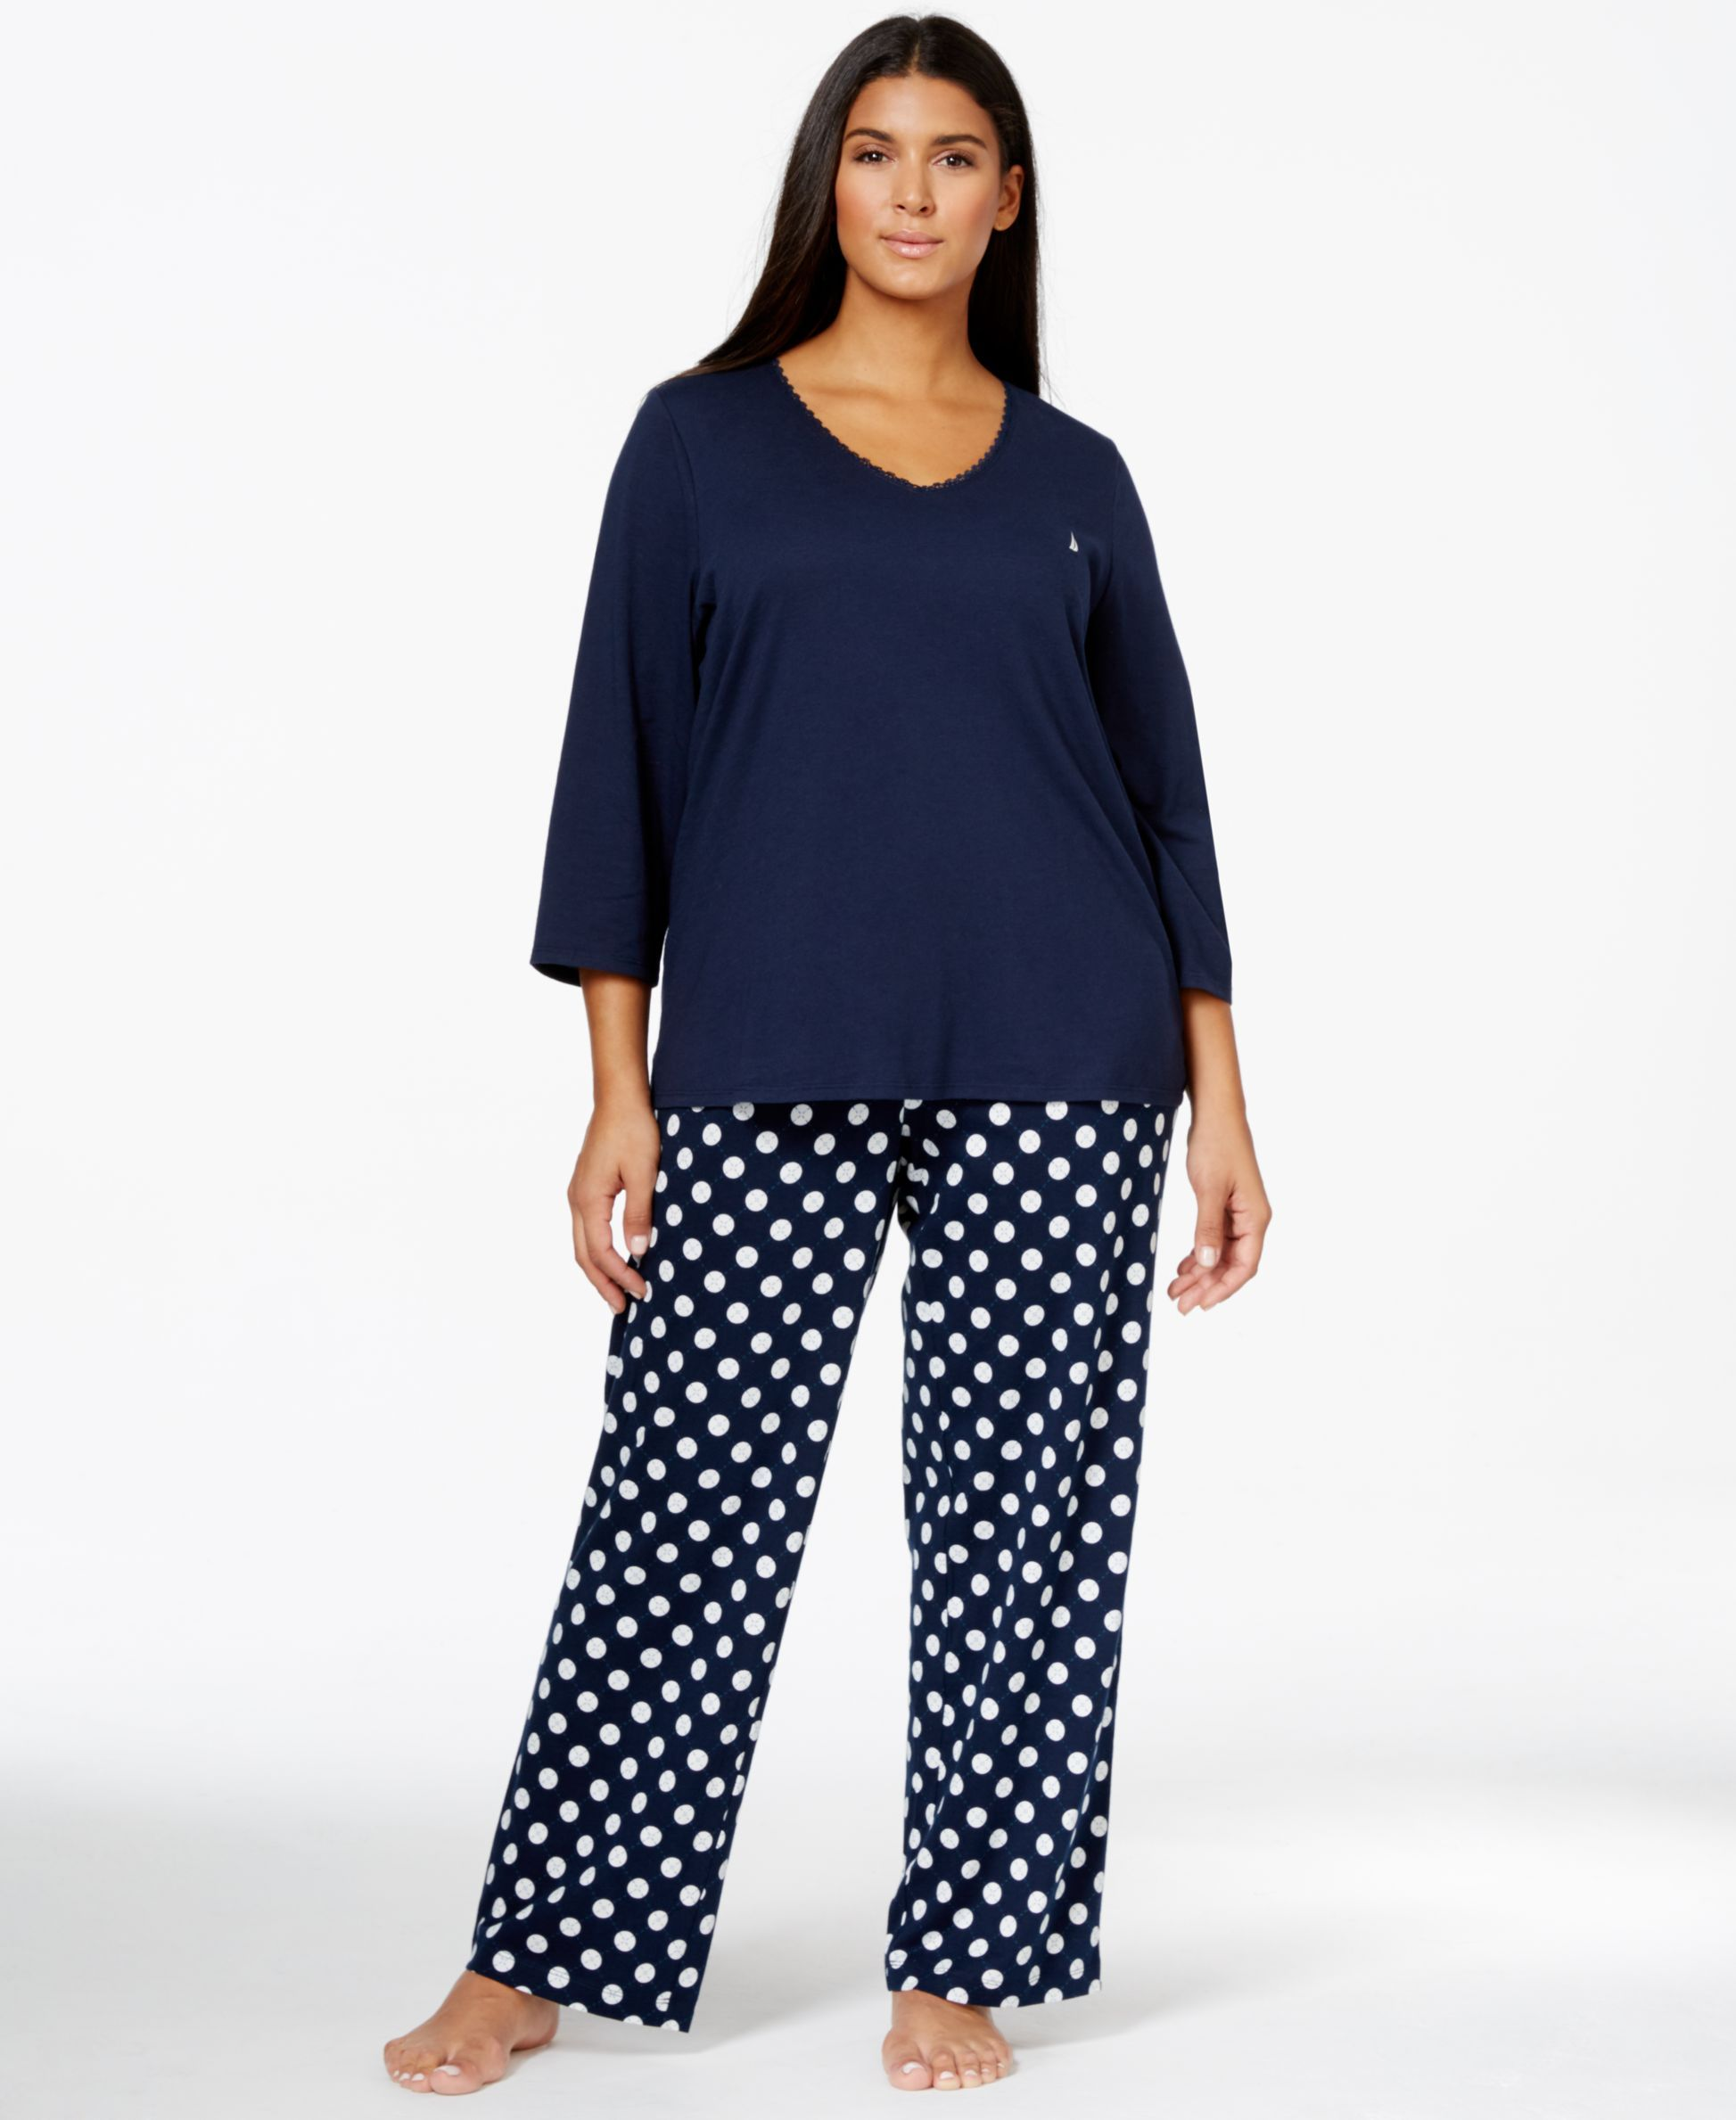 f00c1dfa91 Nautica Plus Size Solid Top and Printed Pajama Pants Set